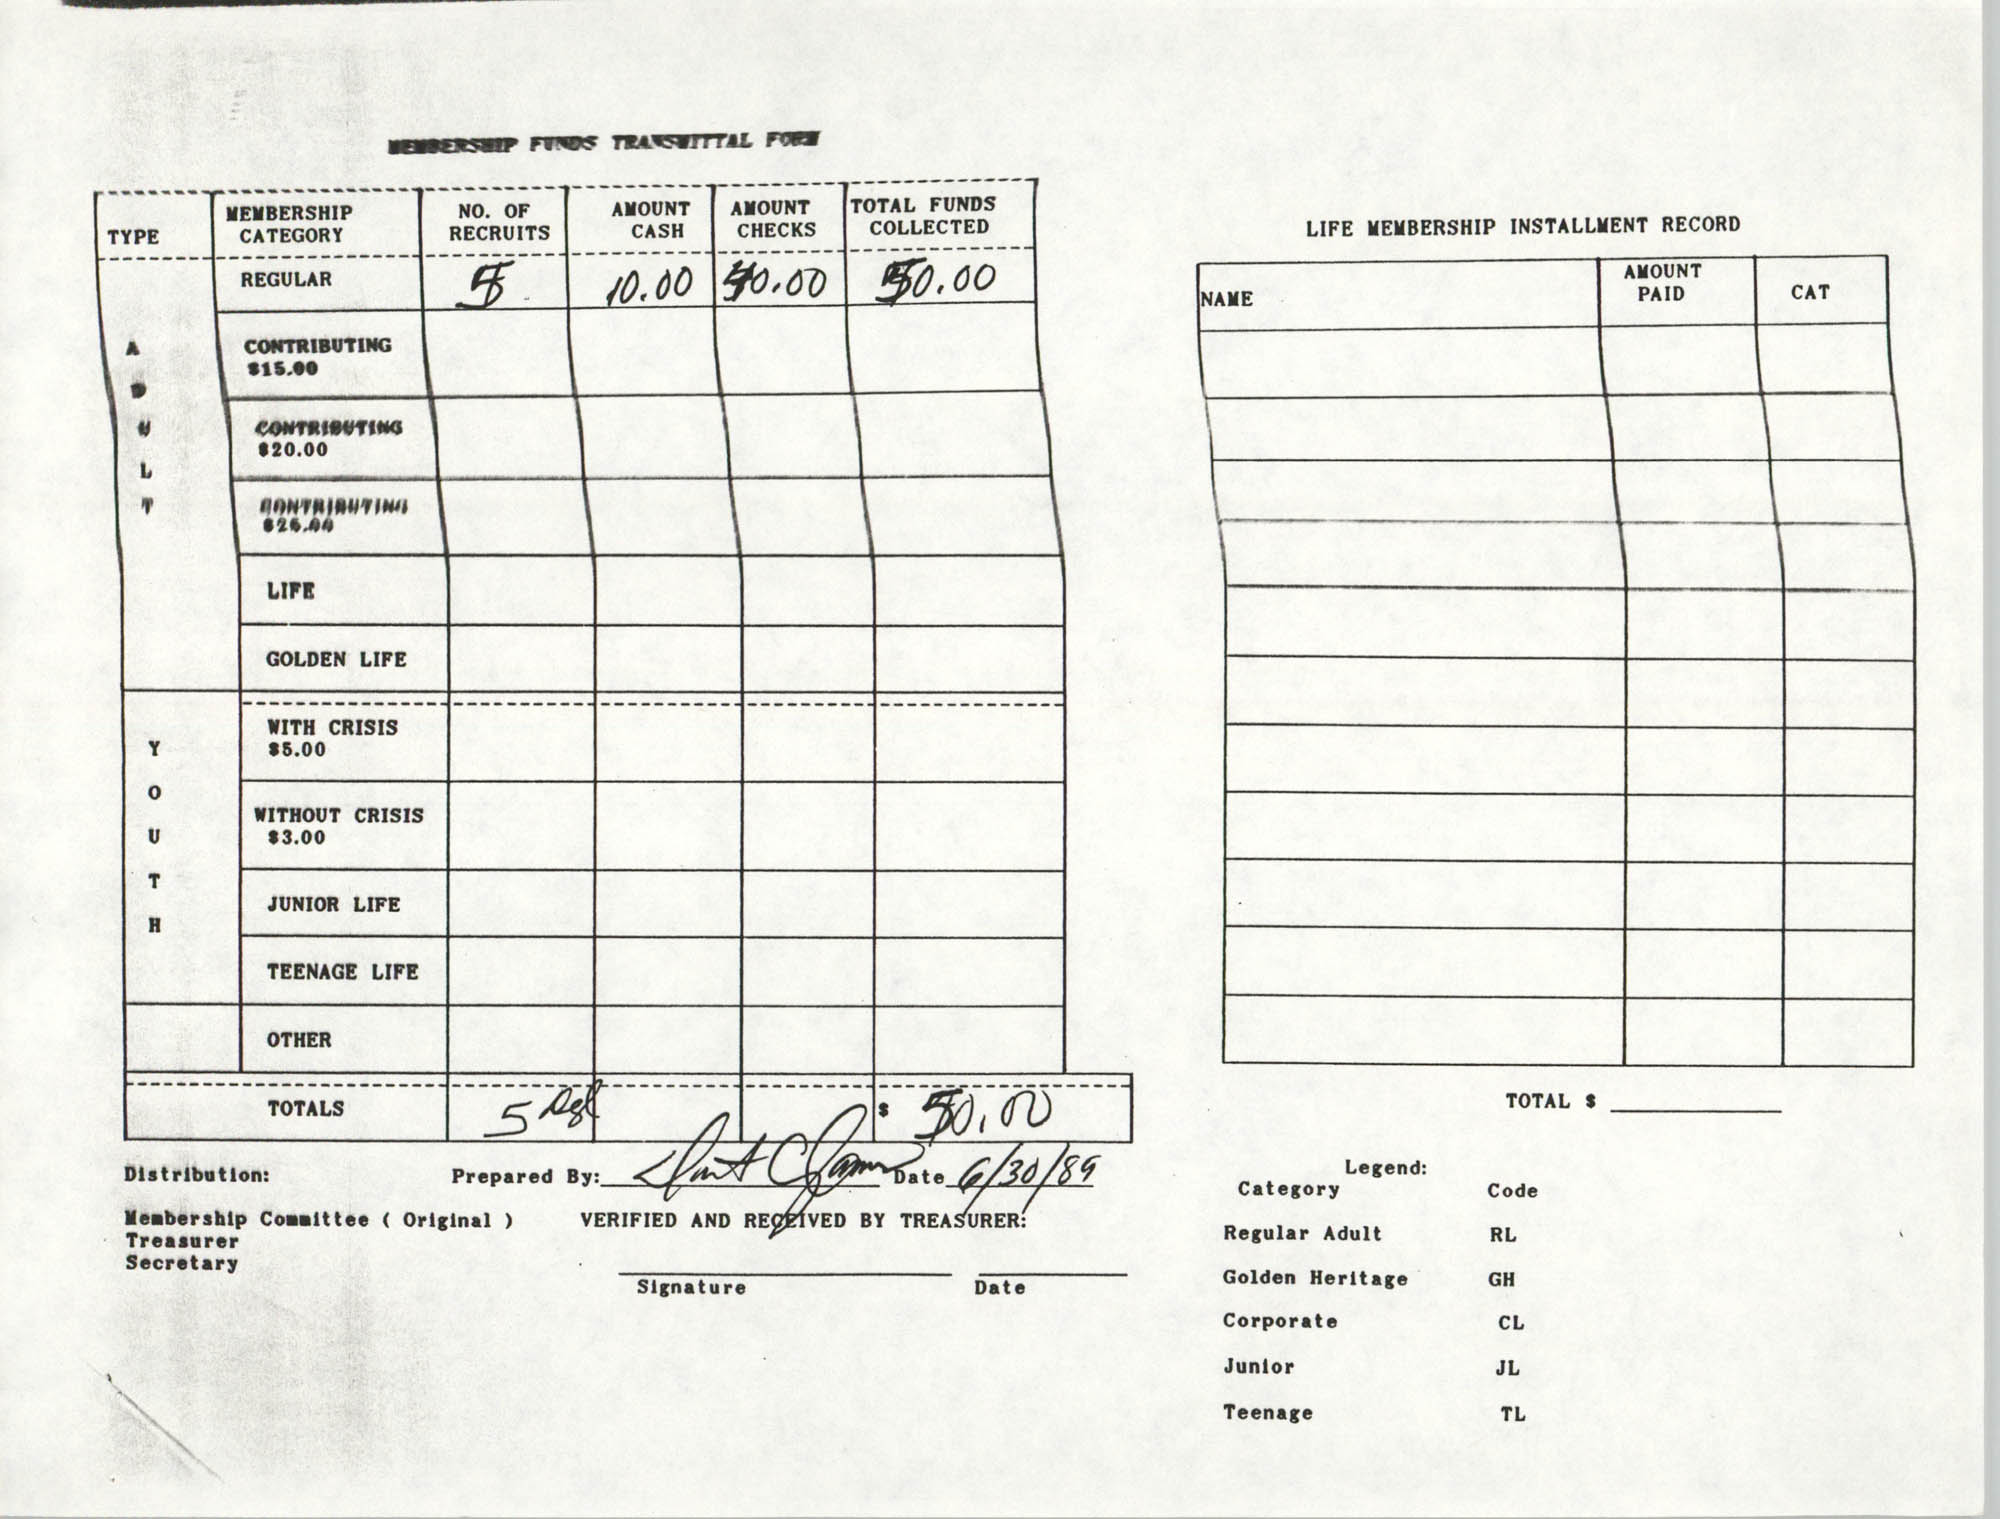 Charleston Branch of the NAACP Funds Transmittal Forms, June 1989, Page 7